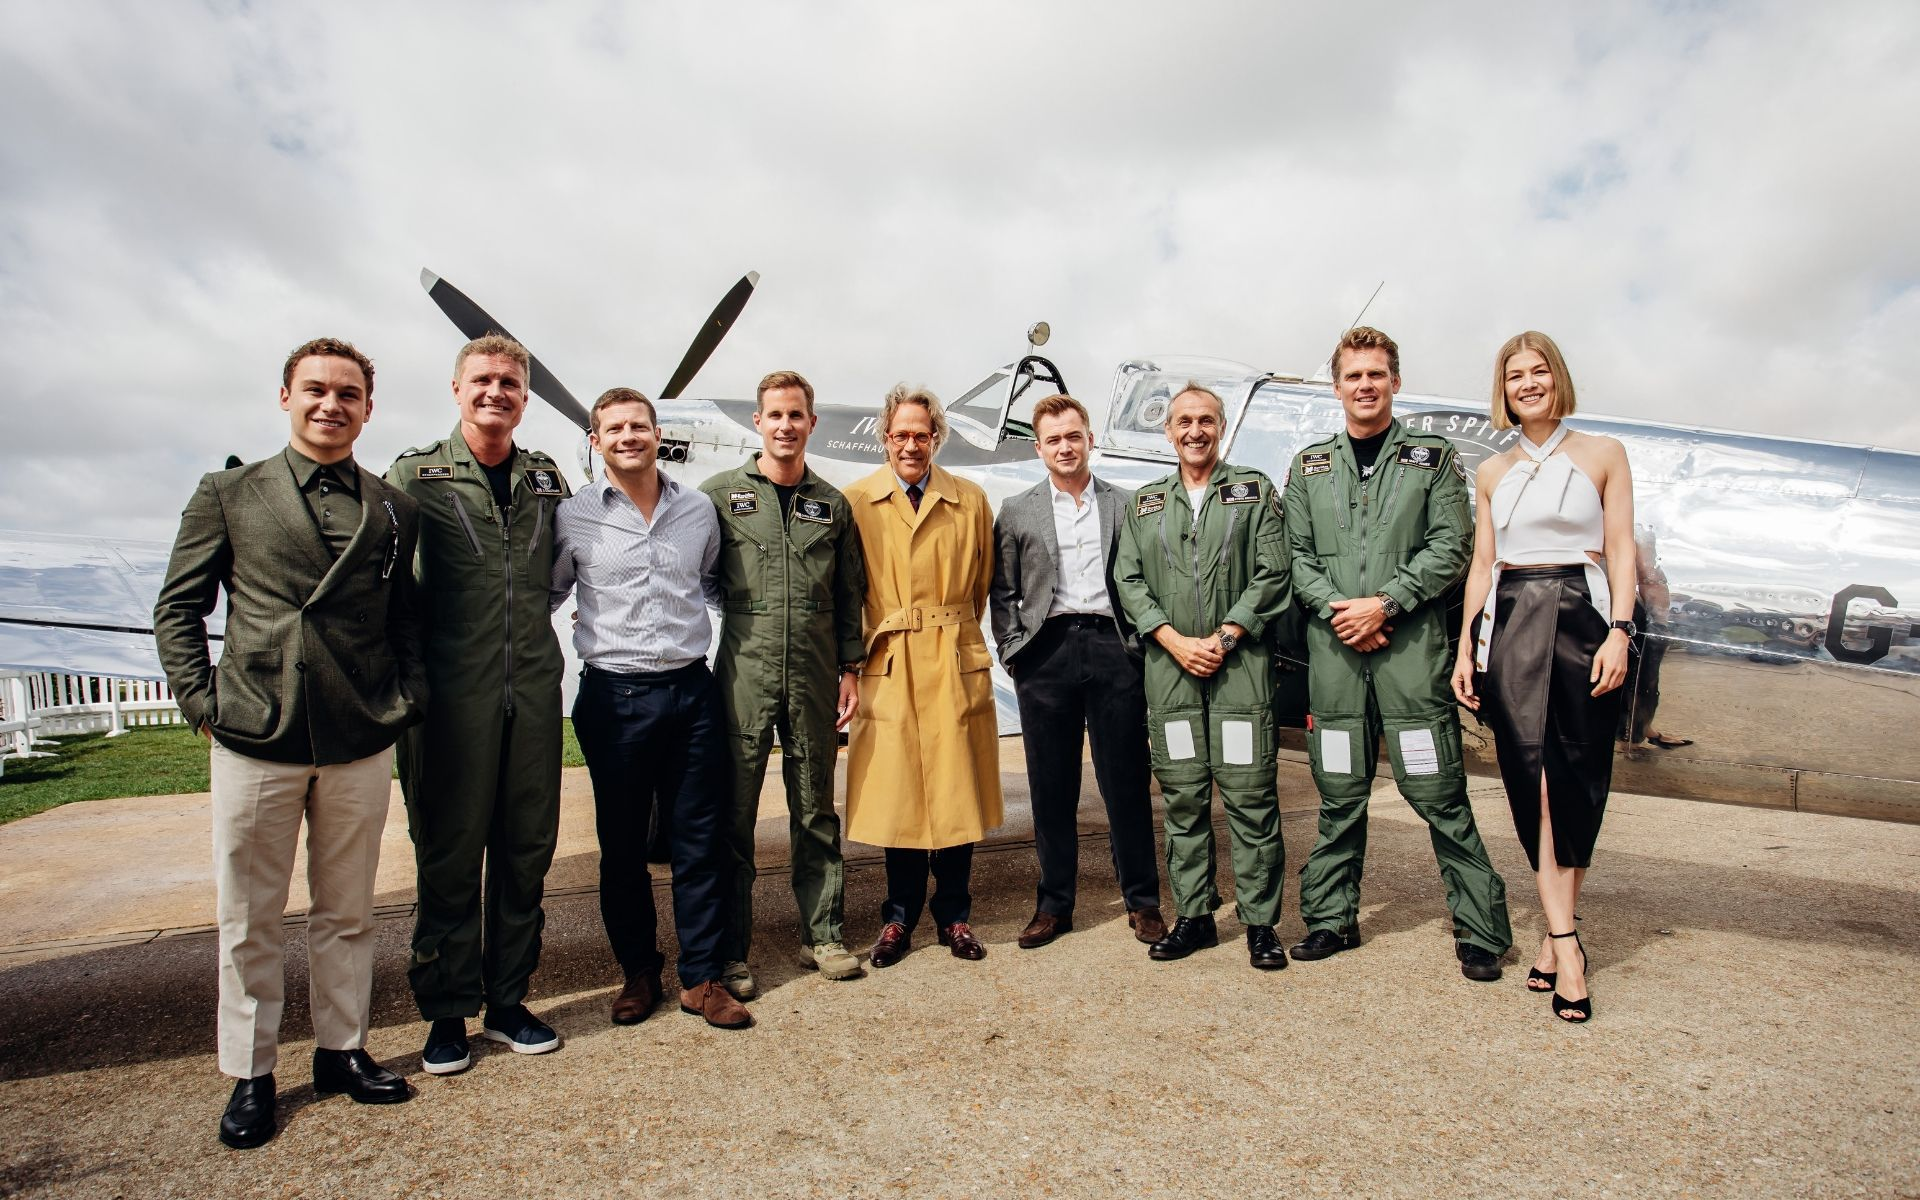 A group shot in front of the Silver Spitfire: Finn Cole, David Coulthard, Dermont O'Leary, Christoph Grainger-Herr, the Duke of Richmond, Taron Egerton, Steve Boultbee Brooks, Matt Jones and Rosamund Pike